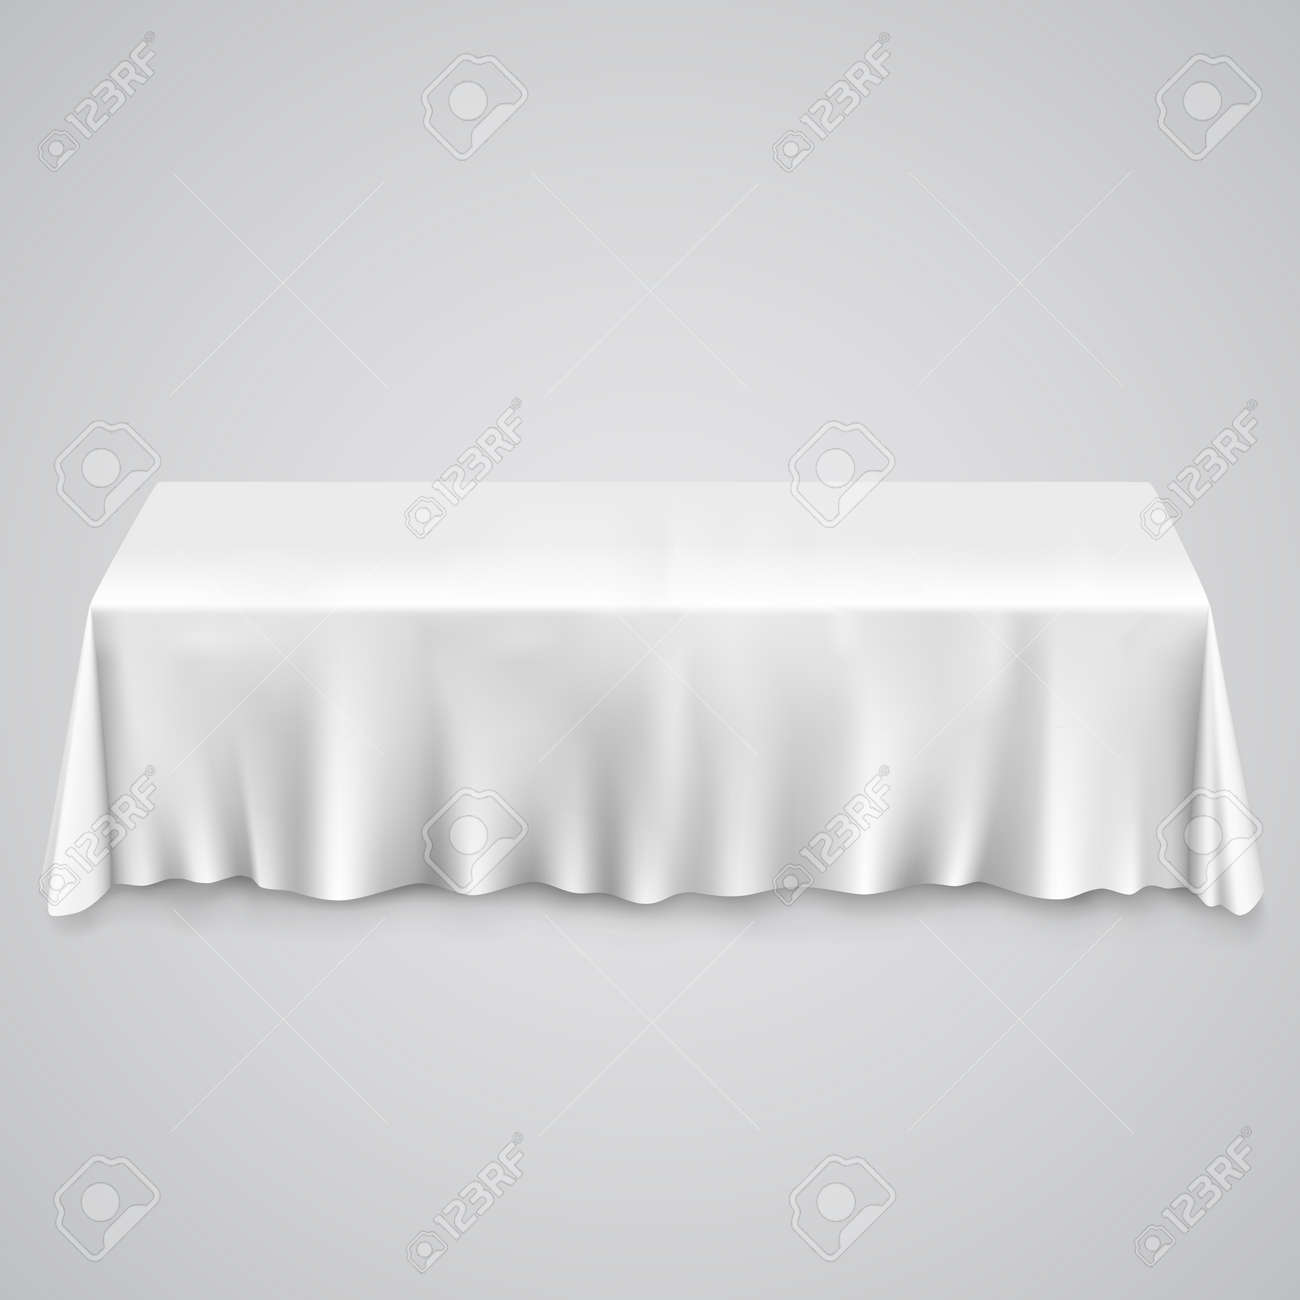 Amazing Table With Tablecloth White. Illustration Art 10eps Stock Vector   35858568